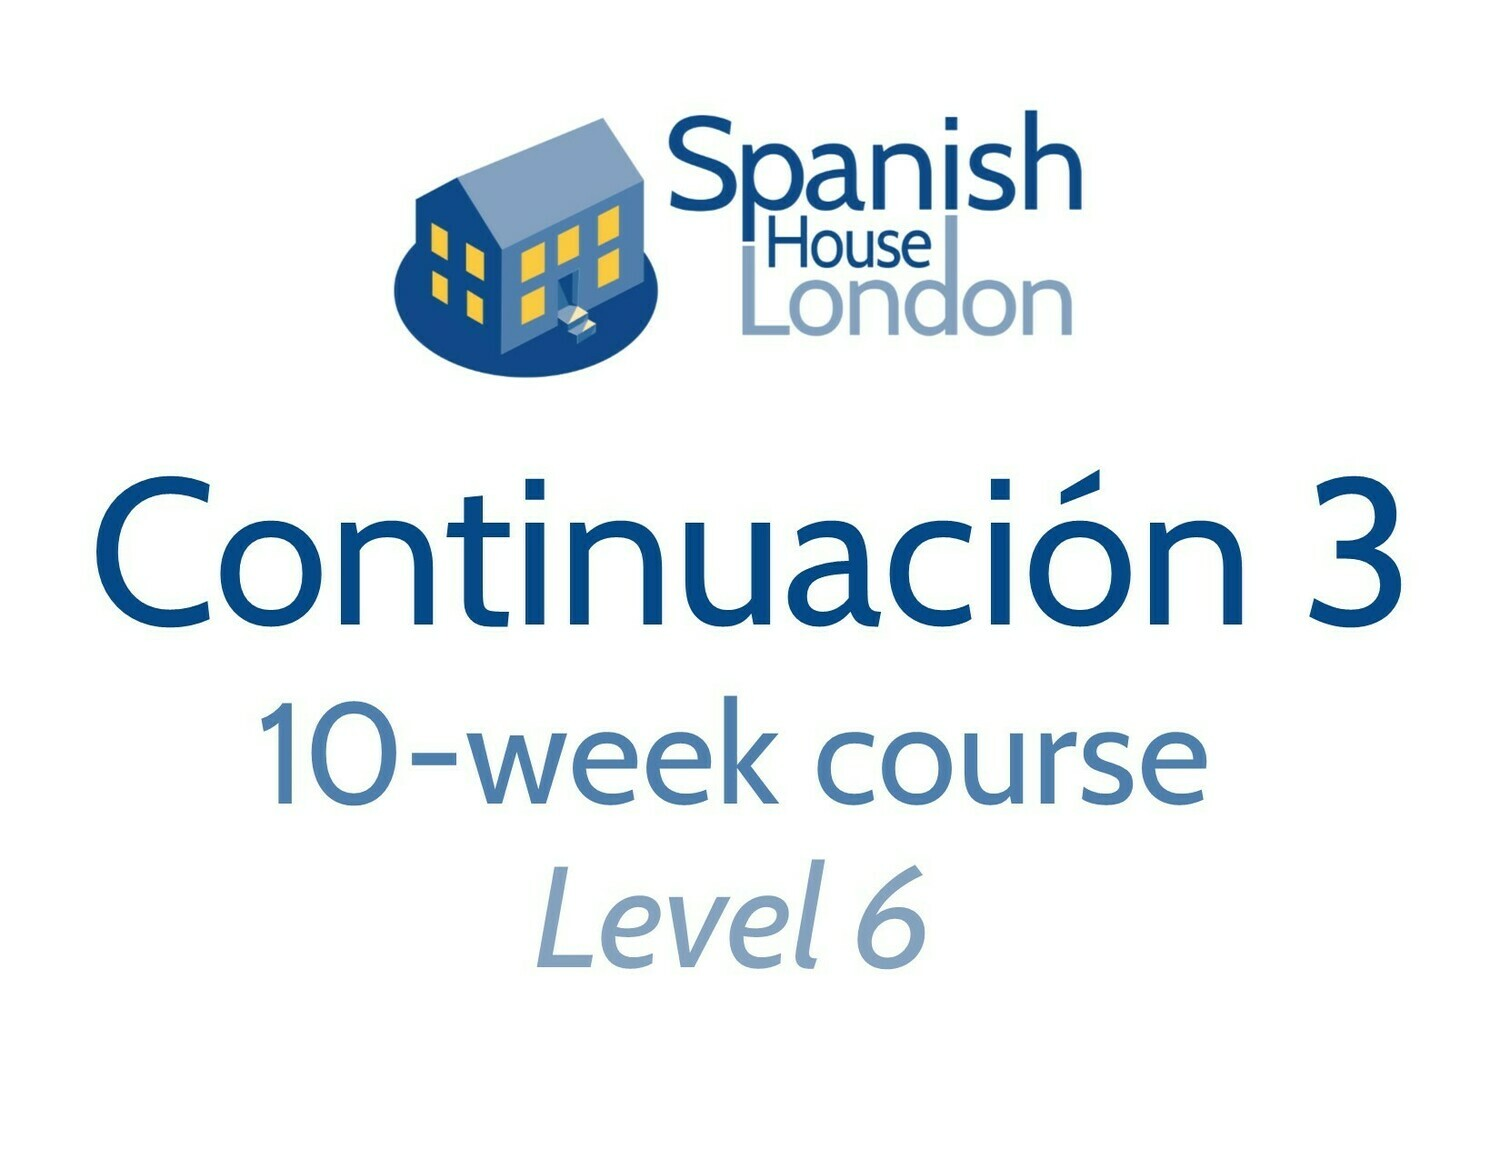 Continuacion 3 Course starting on 29th April at 7.30pm